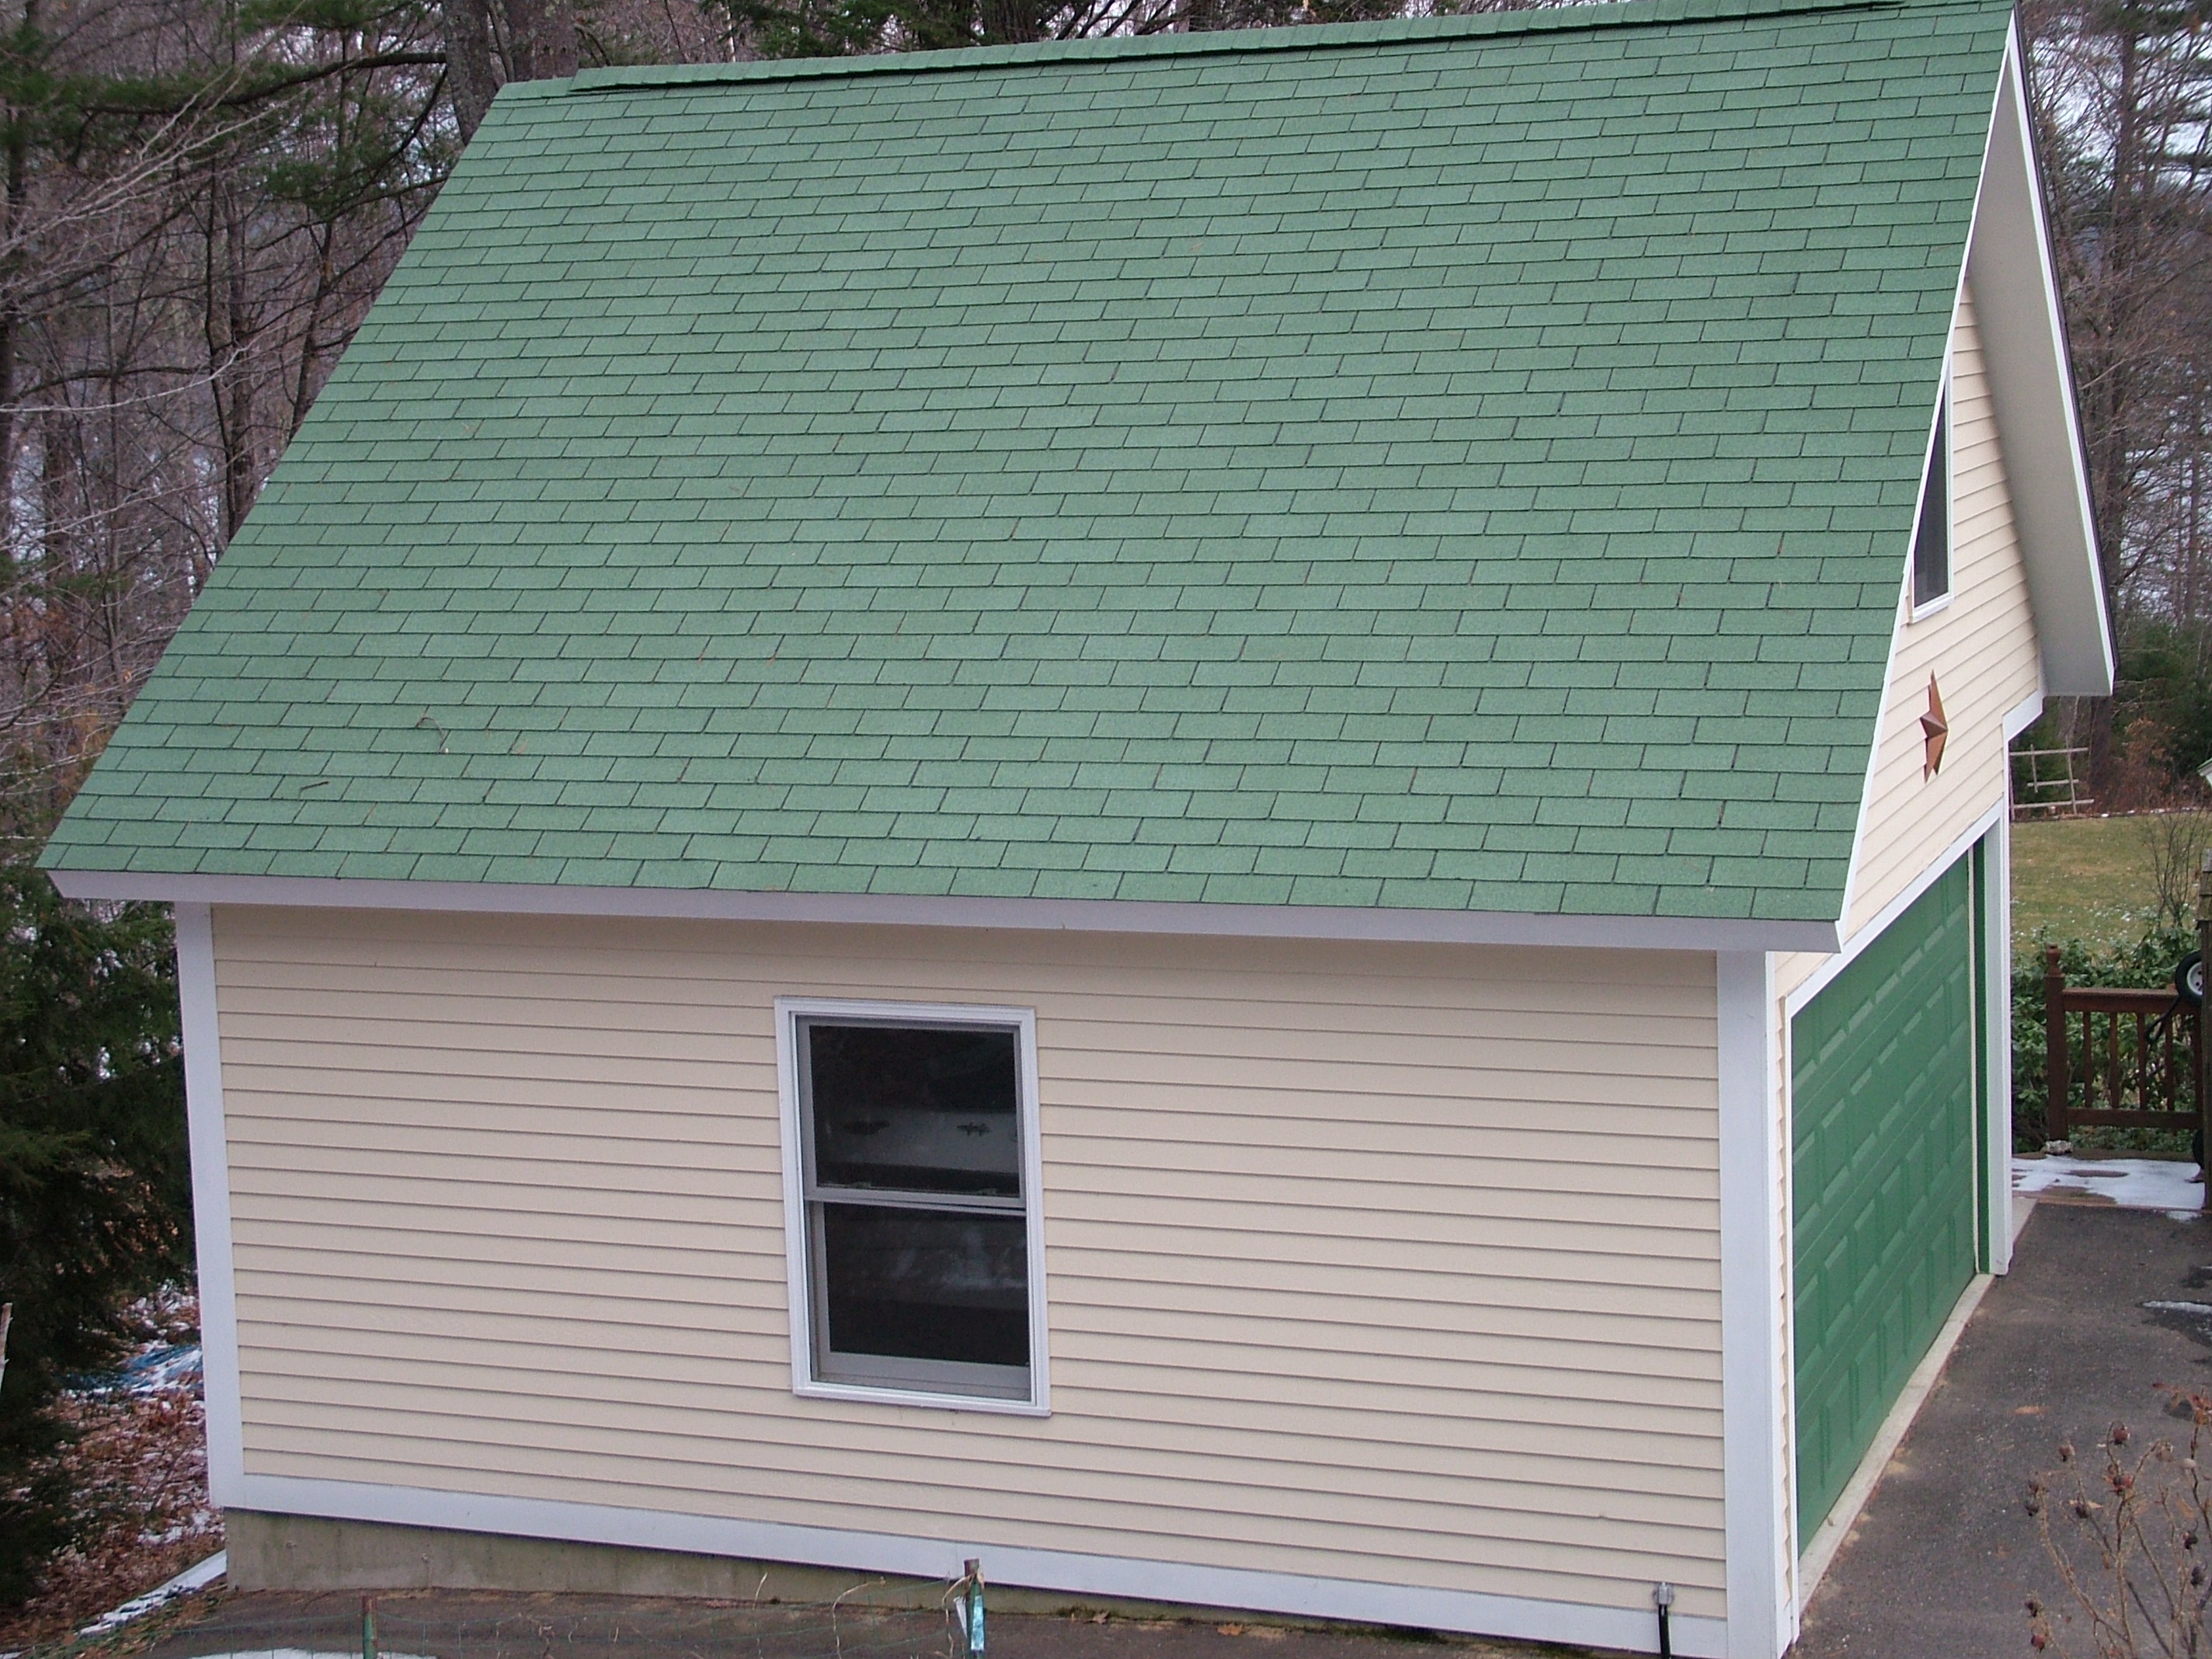 Double The Life Of Your Asphalt Shingle Roof Eguide Ask